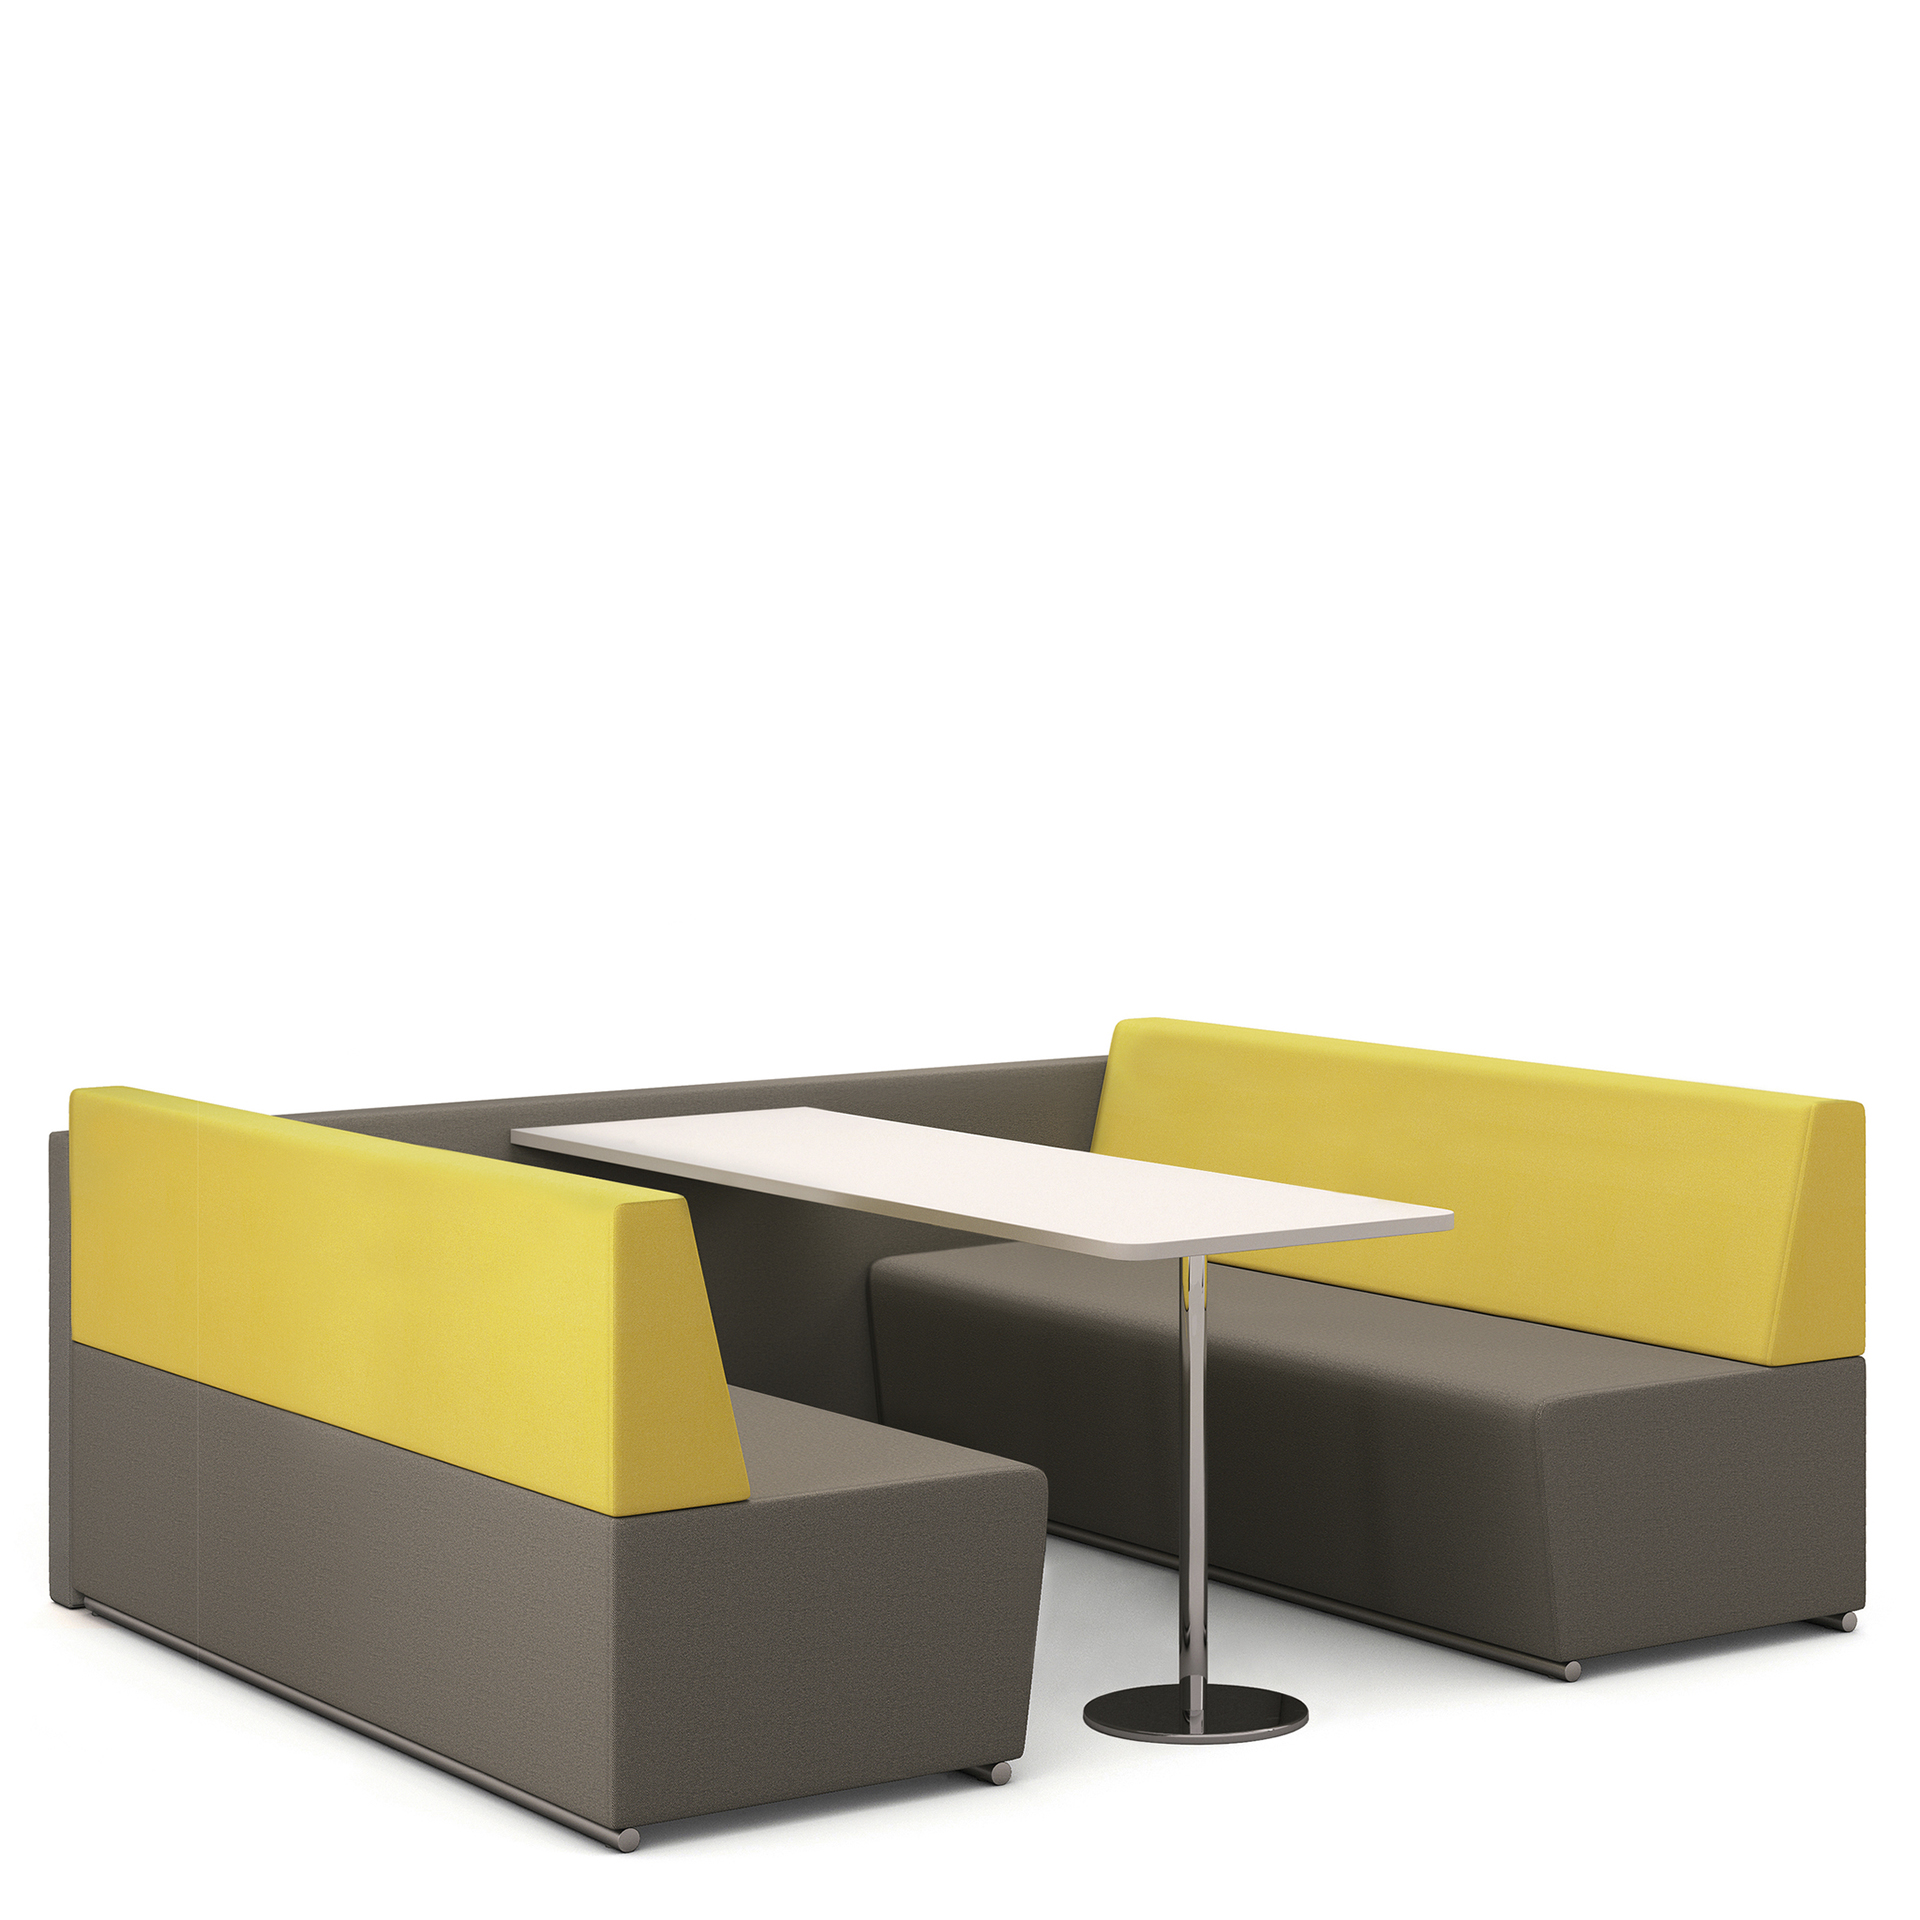 Breakout diner seating 6 Seat